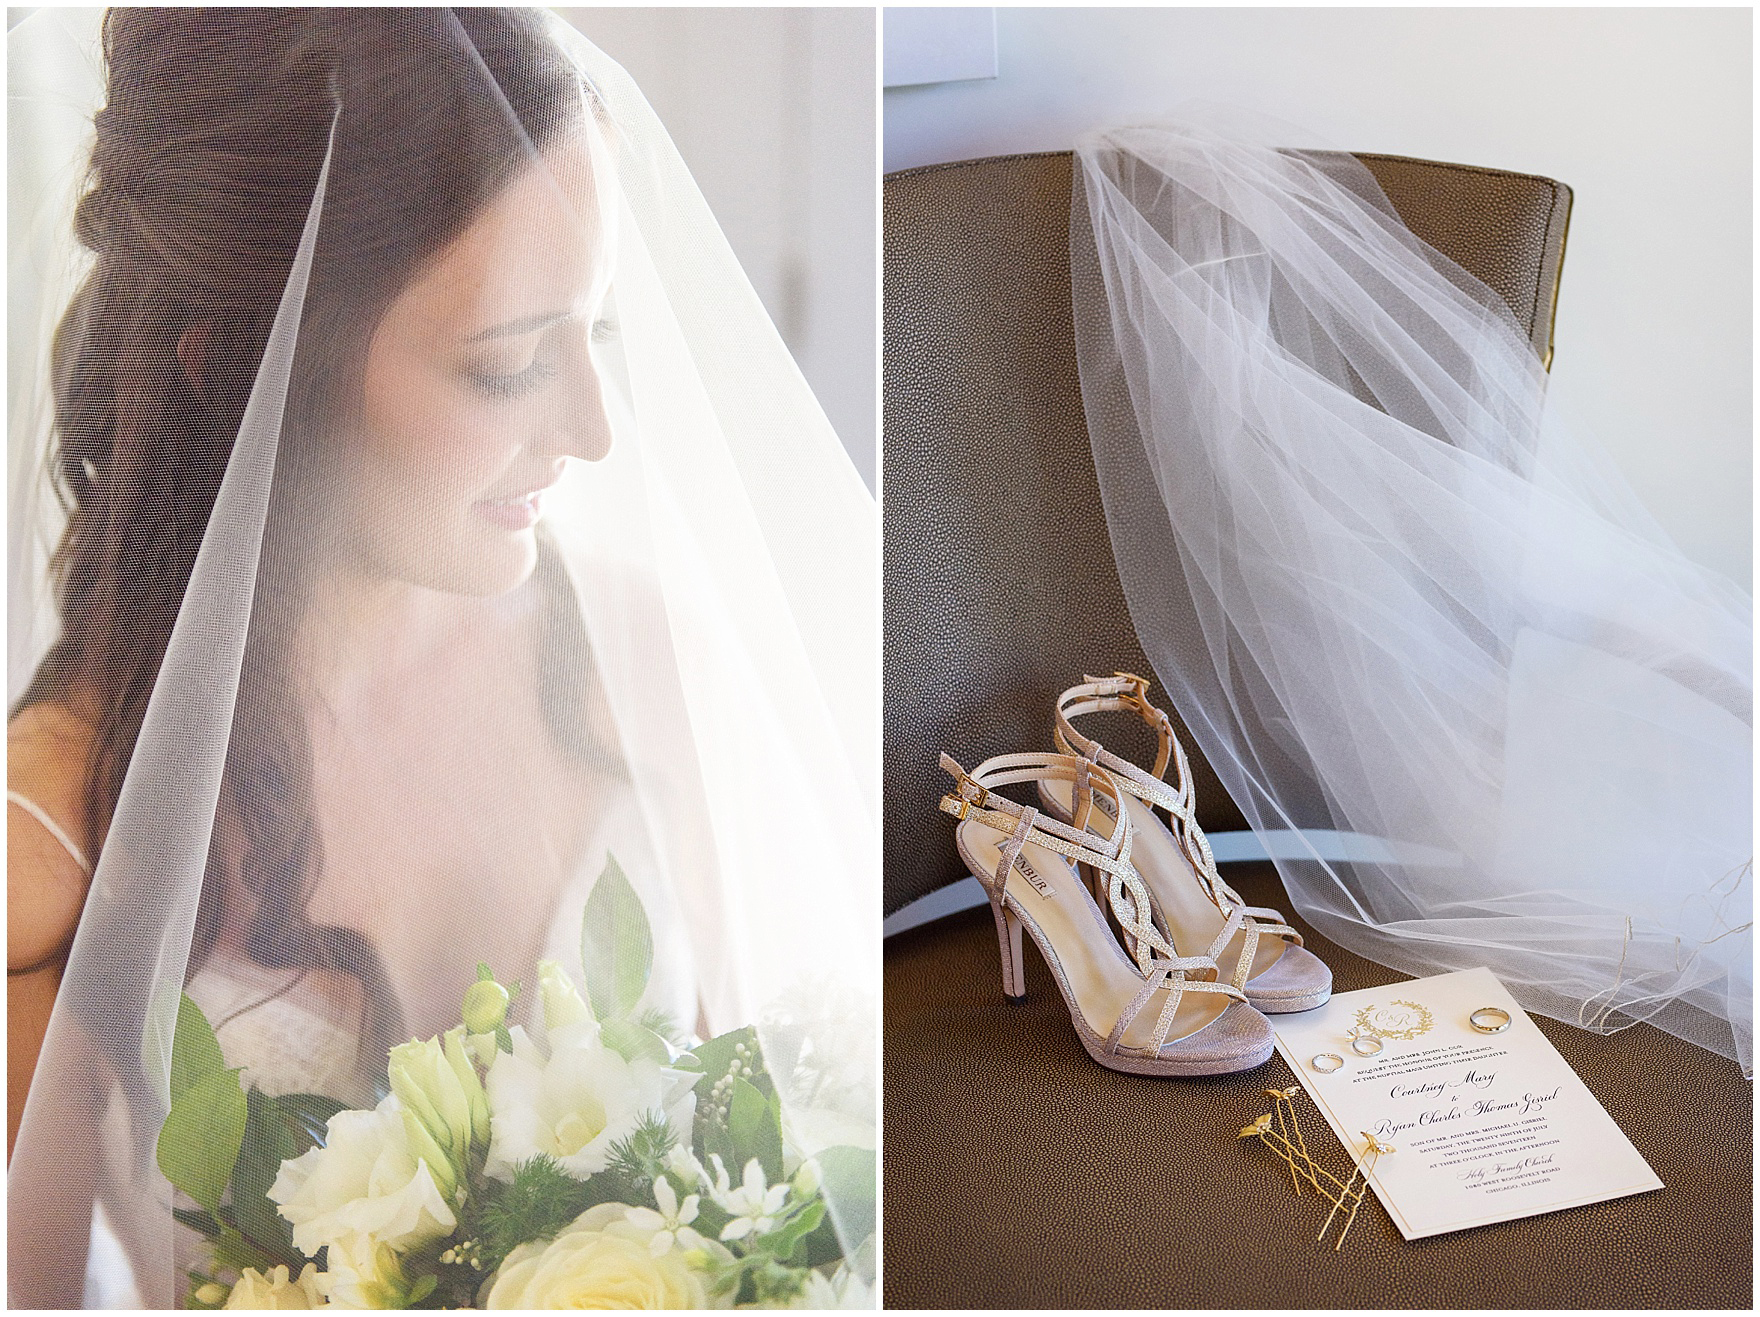 A portrait of a bride under her veil for a Butterfield Country Club wedding.